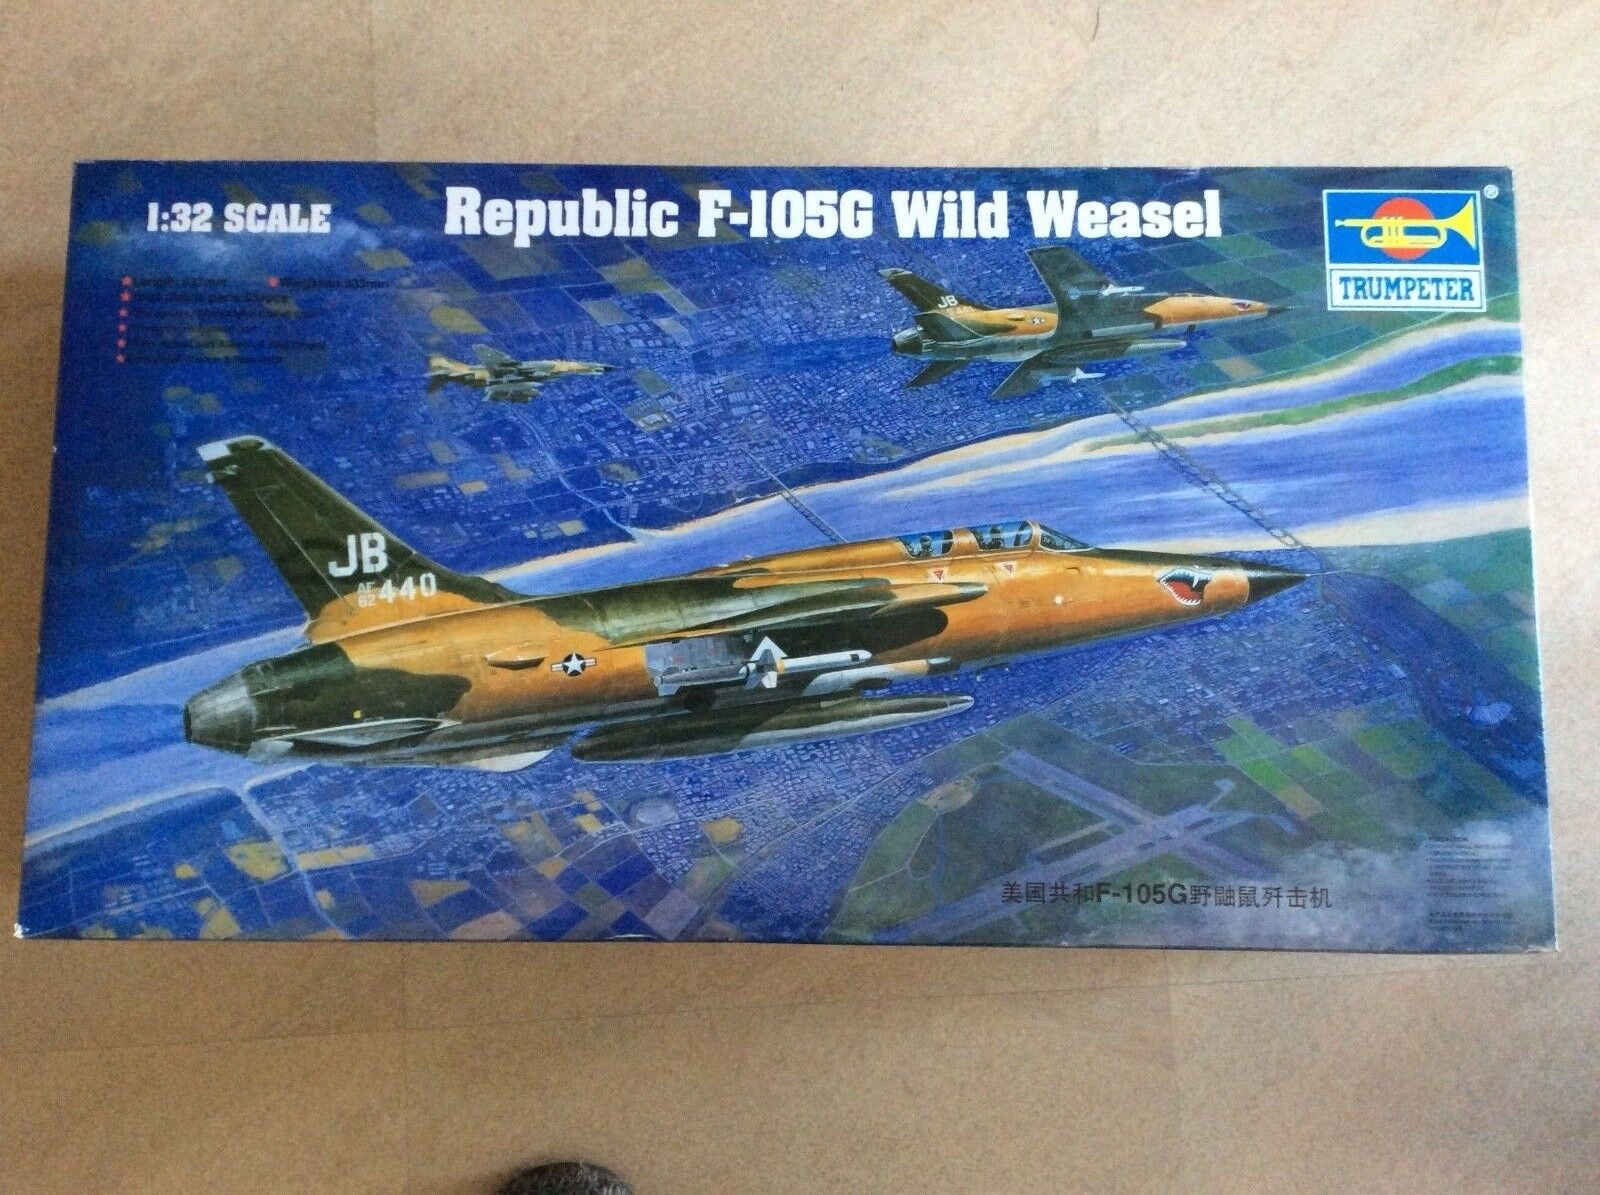 02202 Airplane Model F-105G Wild Weasel Fighter 1 32 Scale Warplane Trumpeter